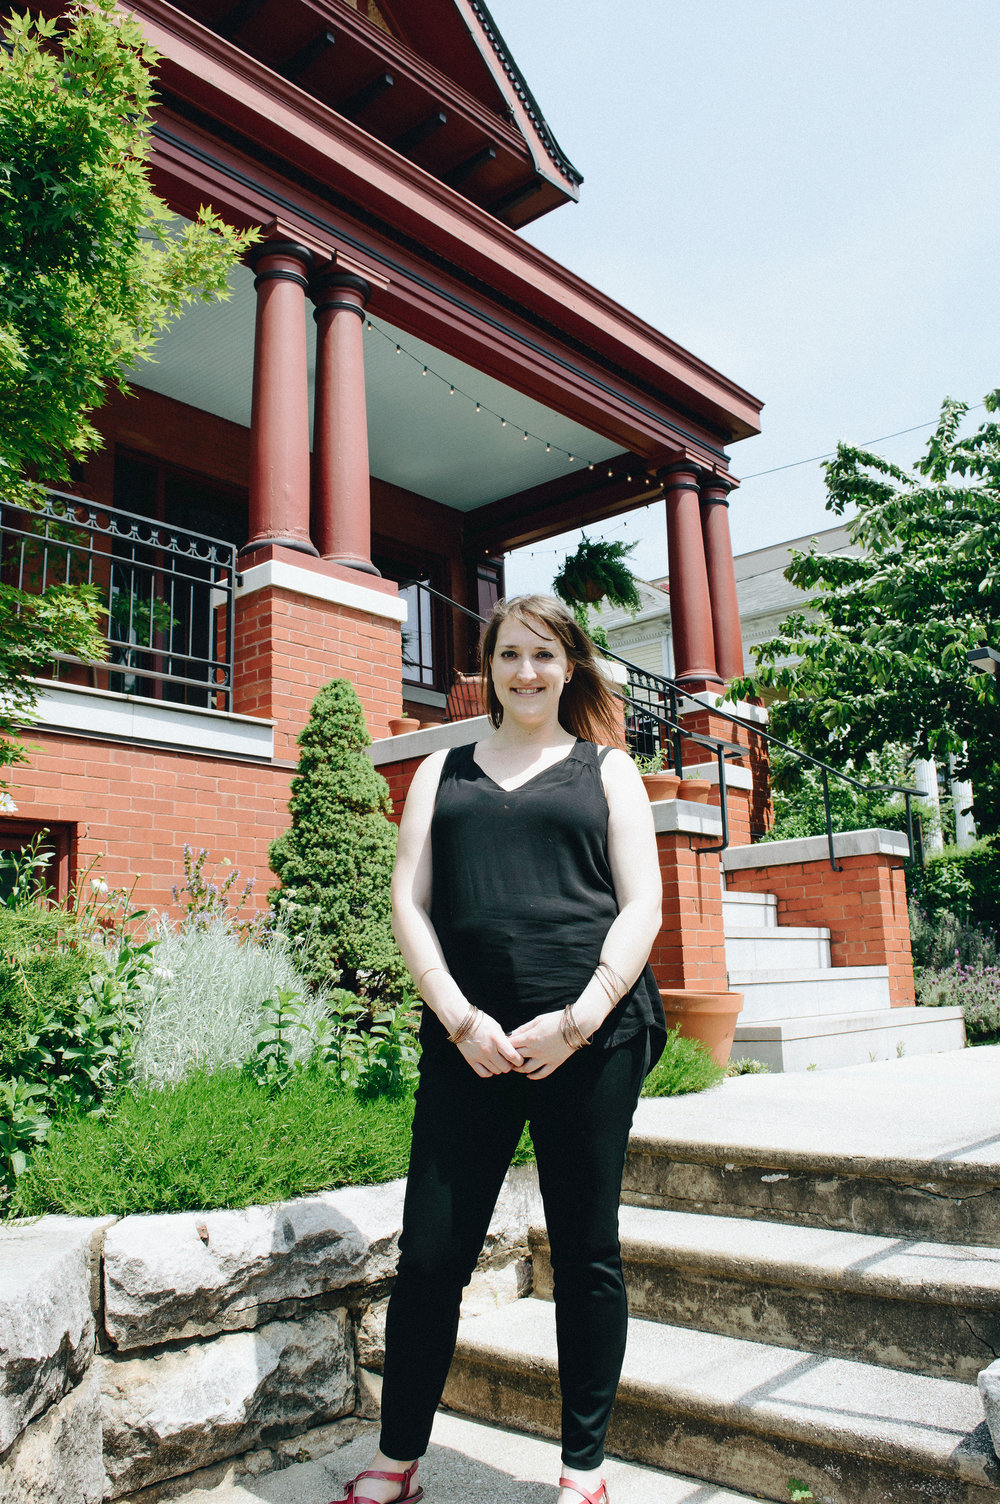 Lila standing in front of the home where her puppet troupe performs